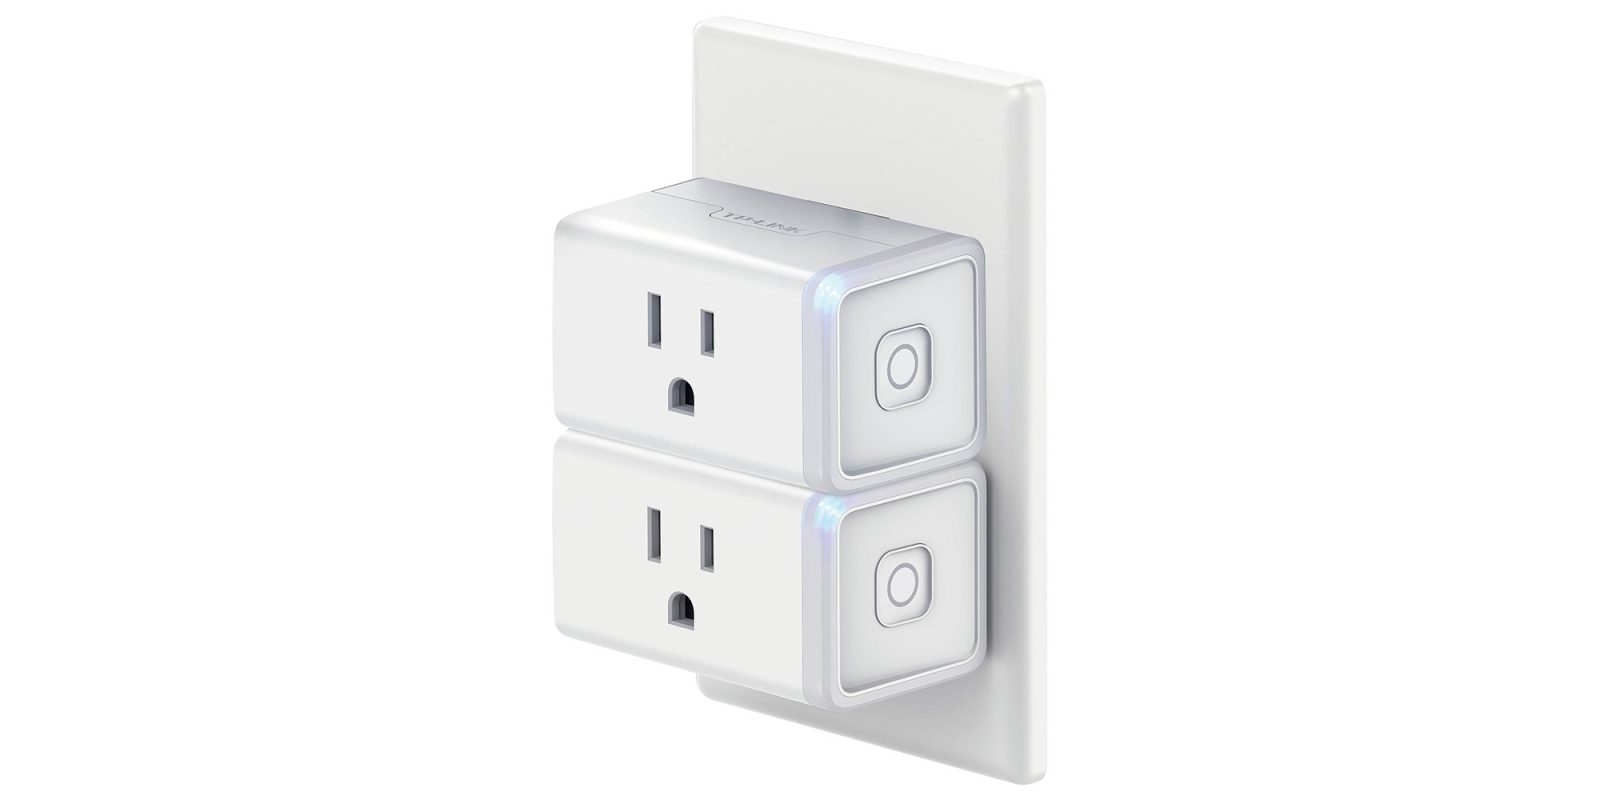 Budget-friendly pricing on TP-Link's smart plugs, today only: 2-pack for $28